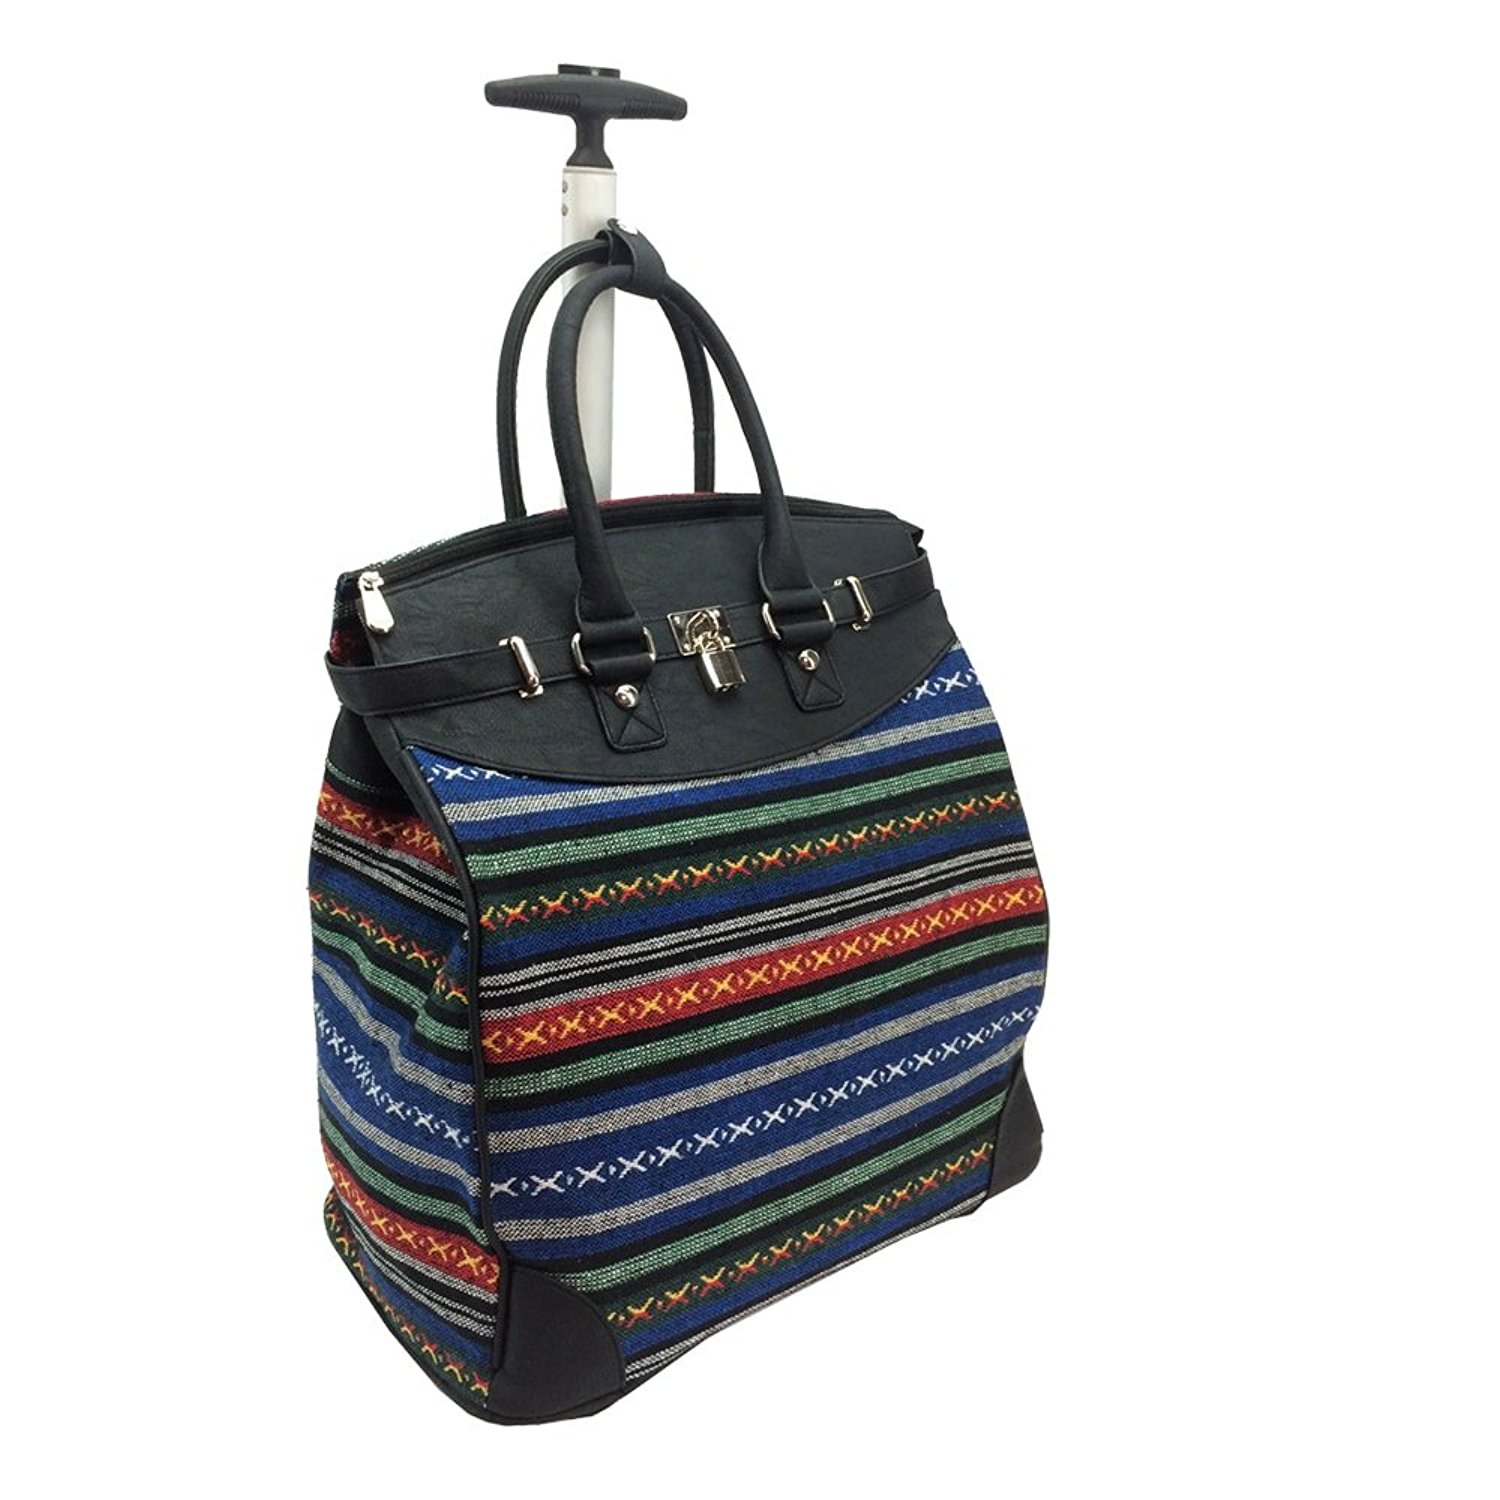 15c9ee84a7f5 Get Quotations · Rollies USA Rollies Aztec Rolling 14-inch Laptop Travel  Tote